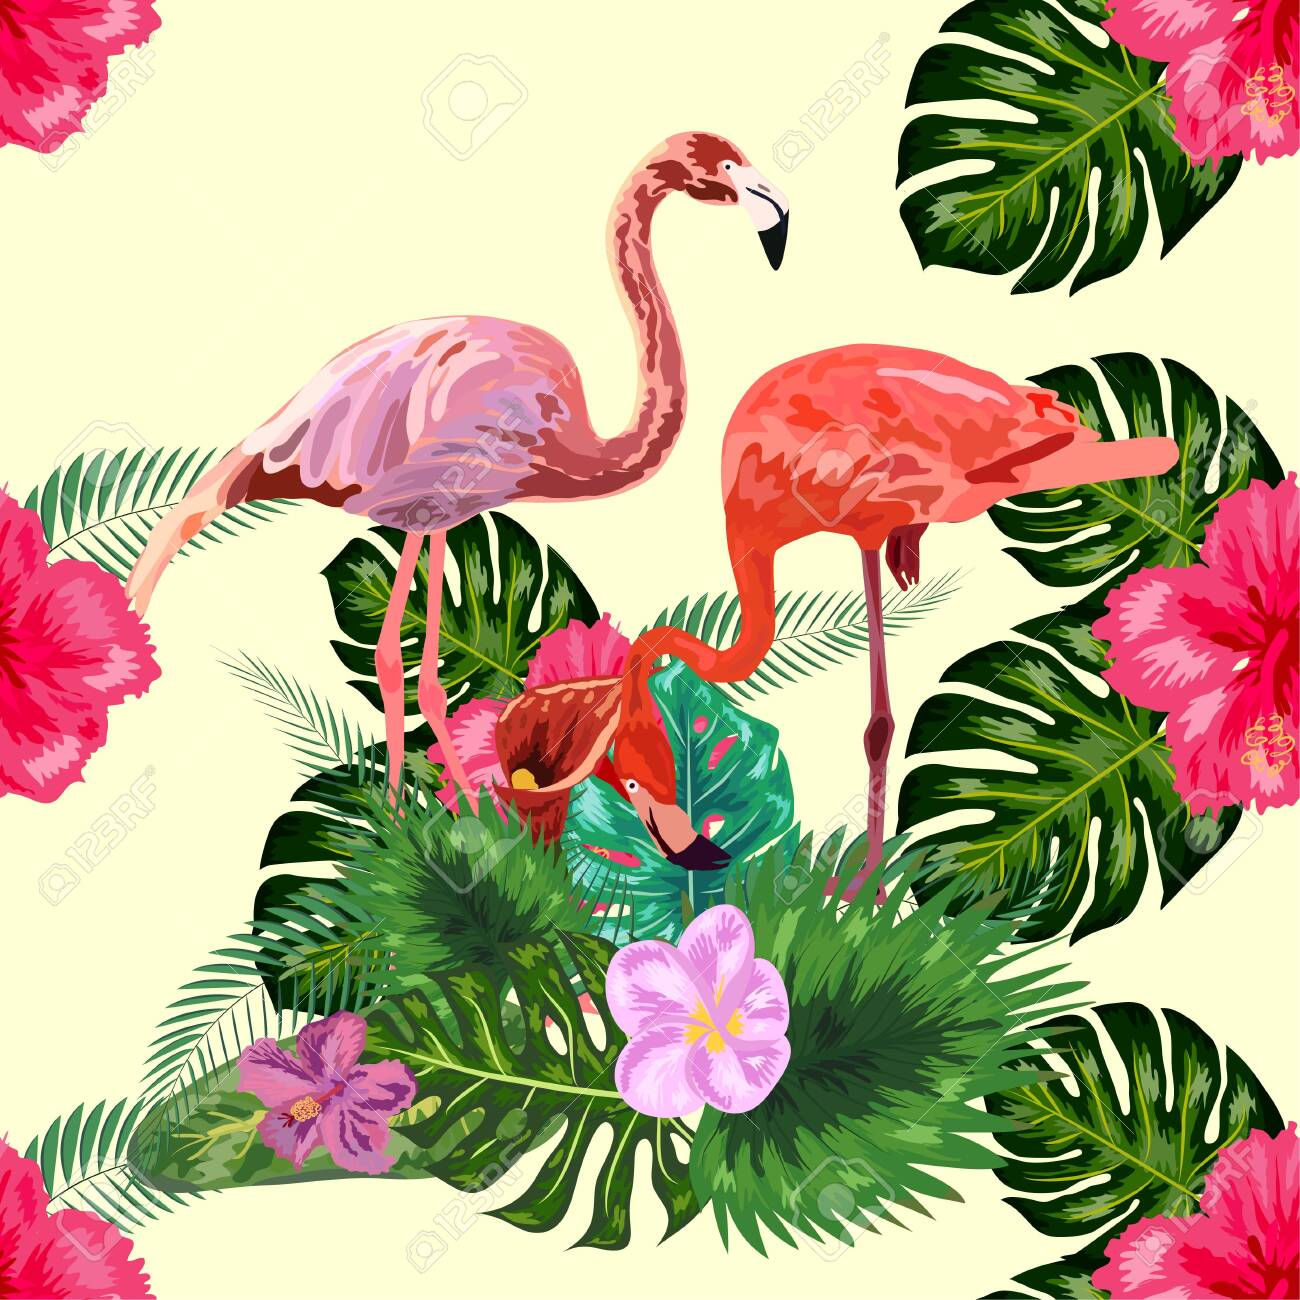 Seamless pattern of flamingos in love among the palm, flovers - 141139180